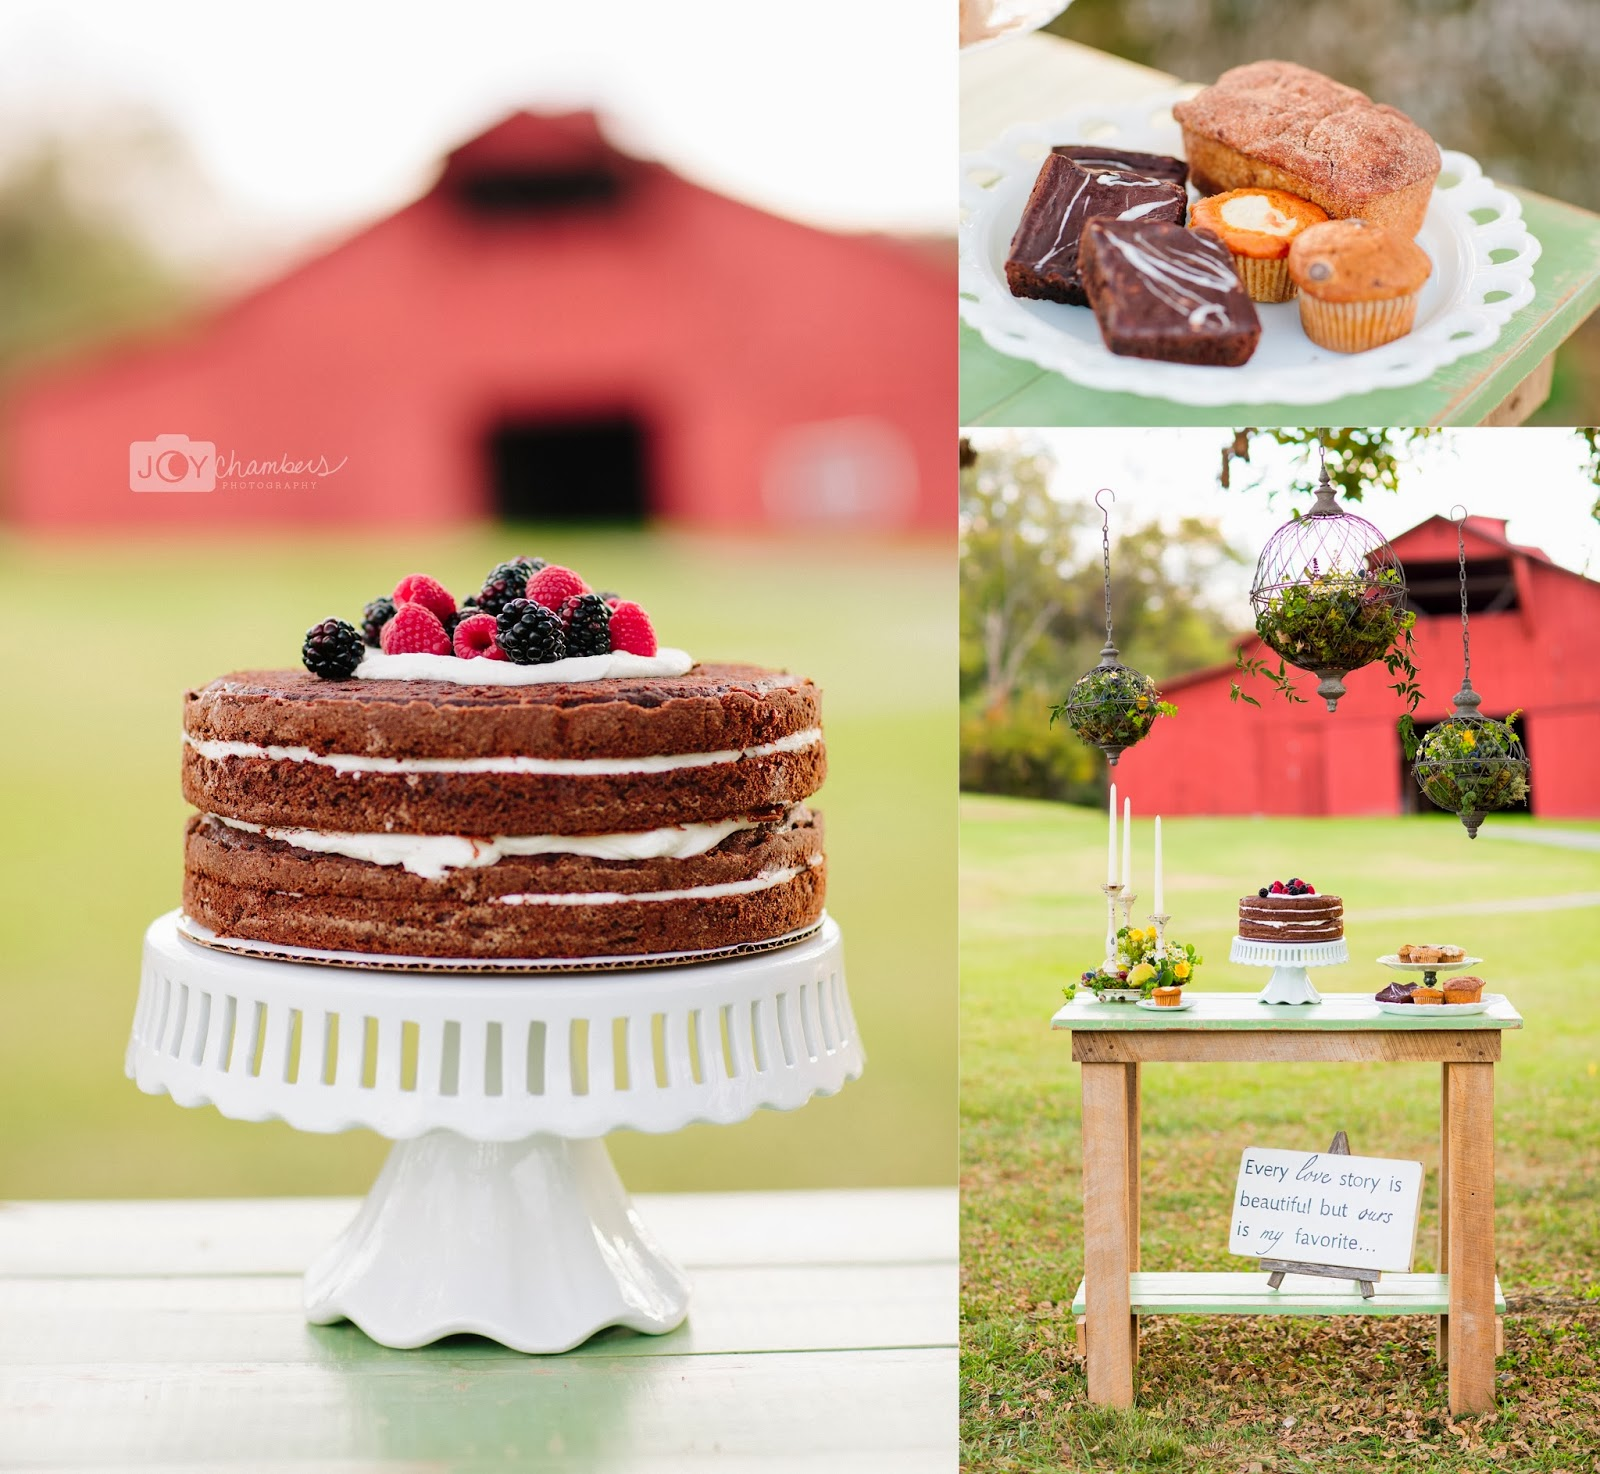 Joy Chambers Photography: Farm To Table | Rutherford County Style ...